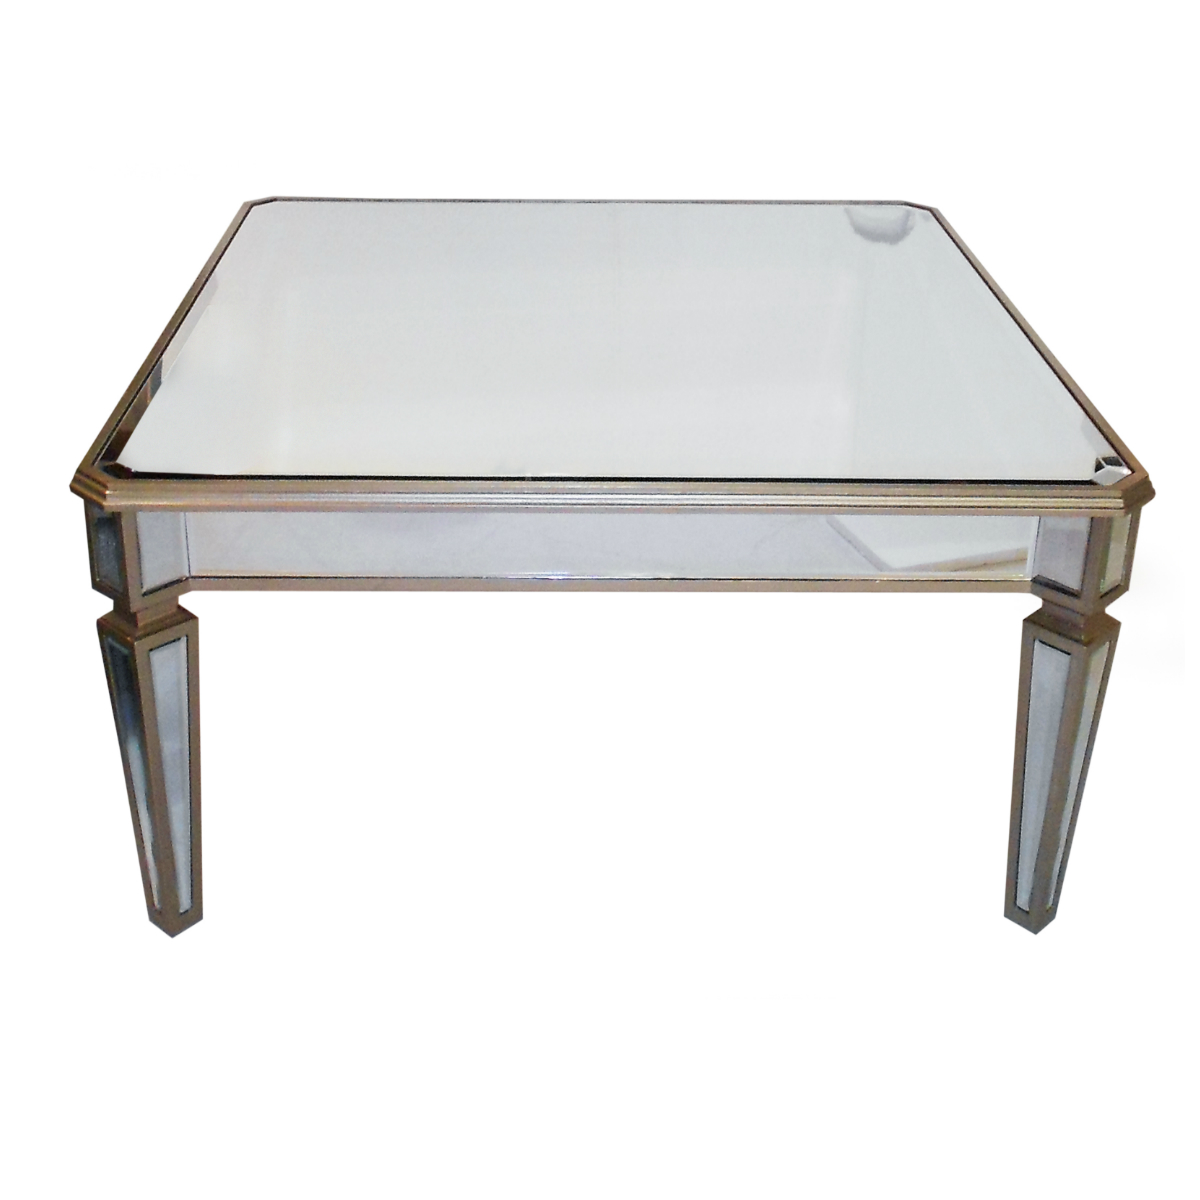 EX square coffee table gold